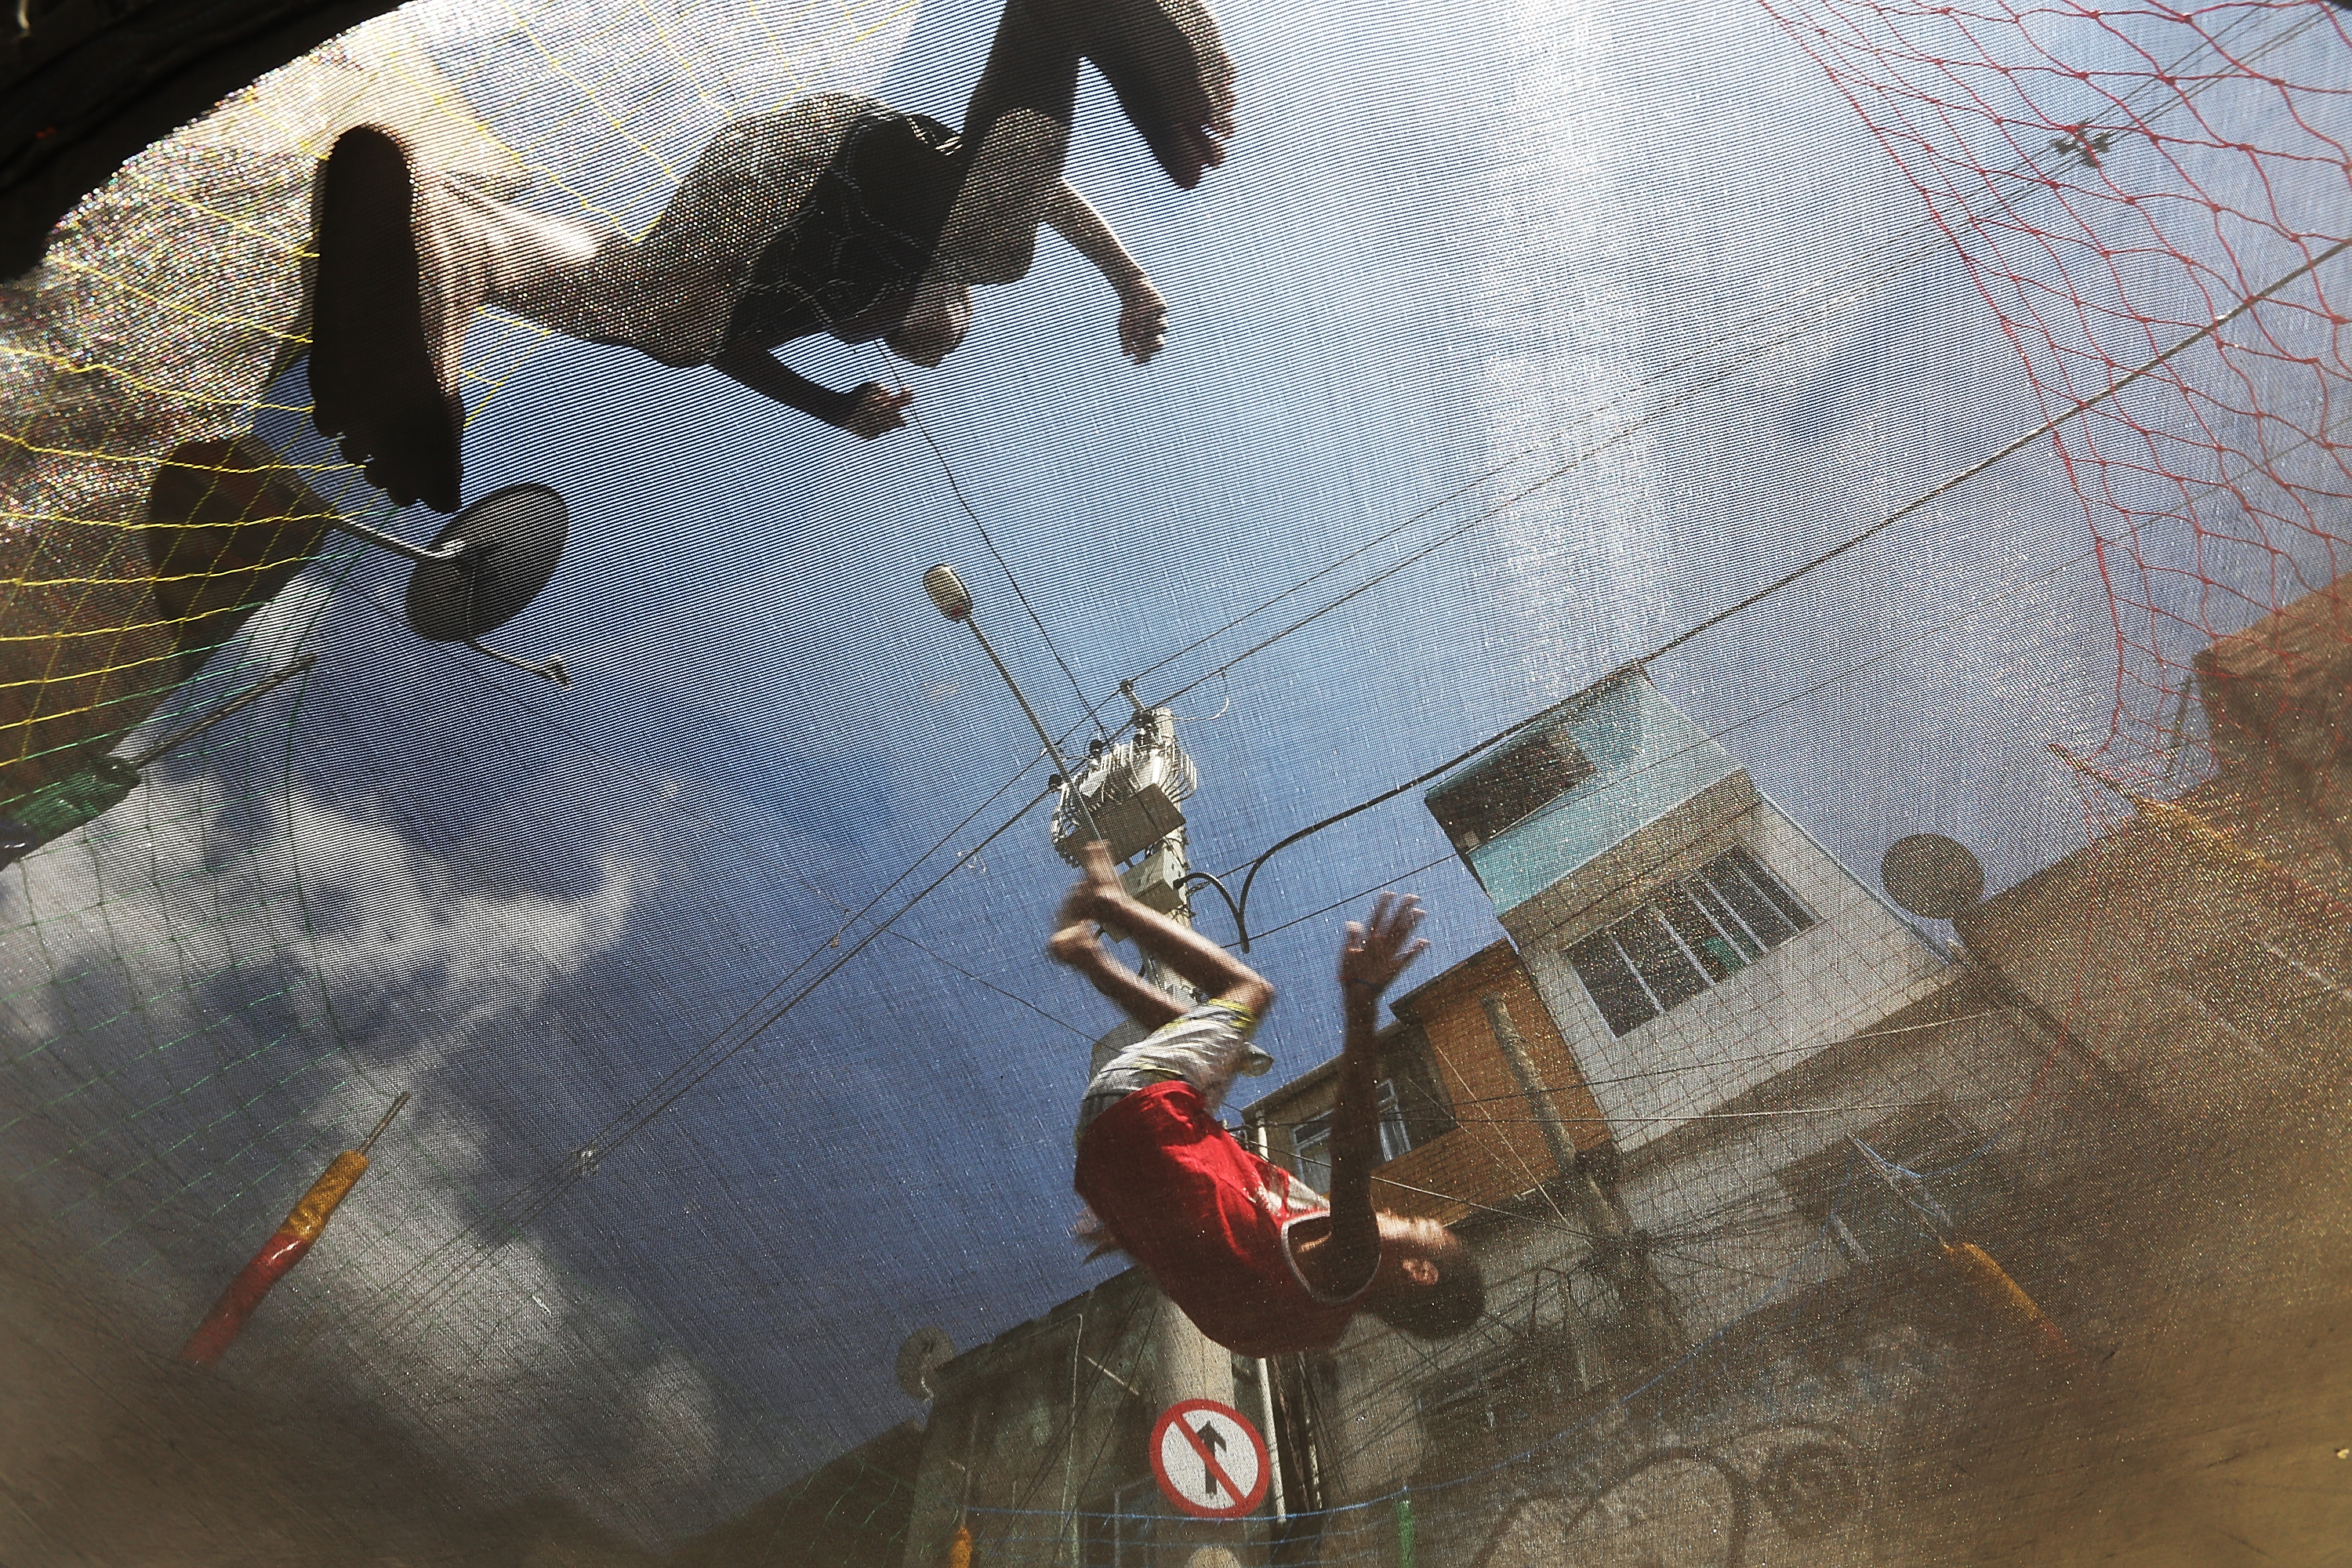 Boys play on a trampoline before the start of a communal marriage ceremony in the Mangueira pacified favela on November 9, 2013 in Rio de Janeiro.